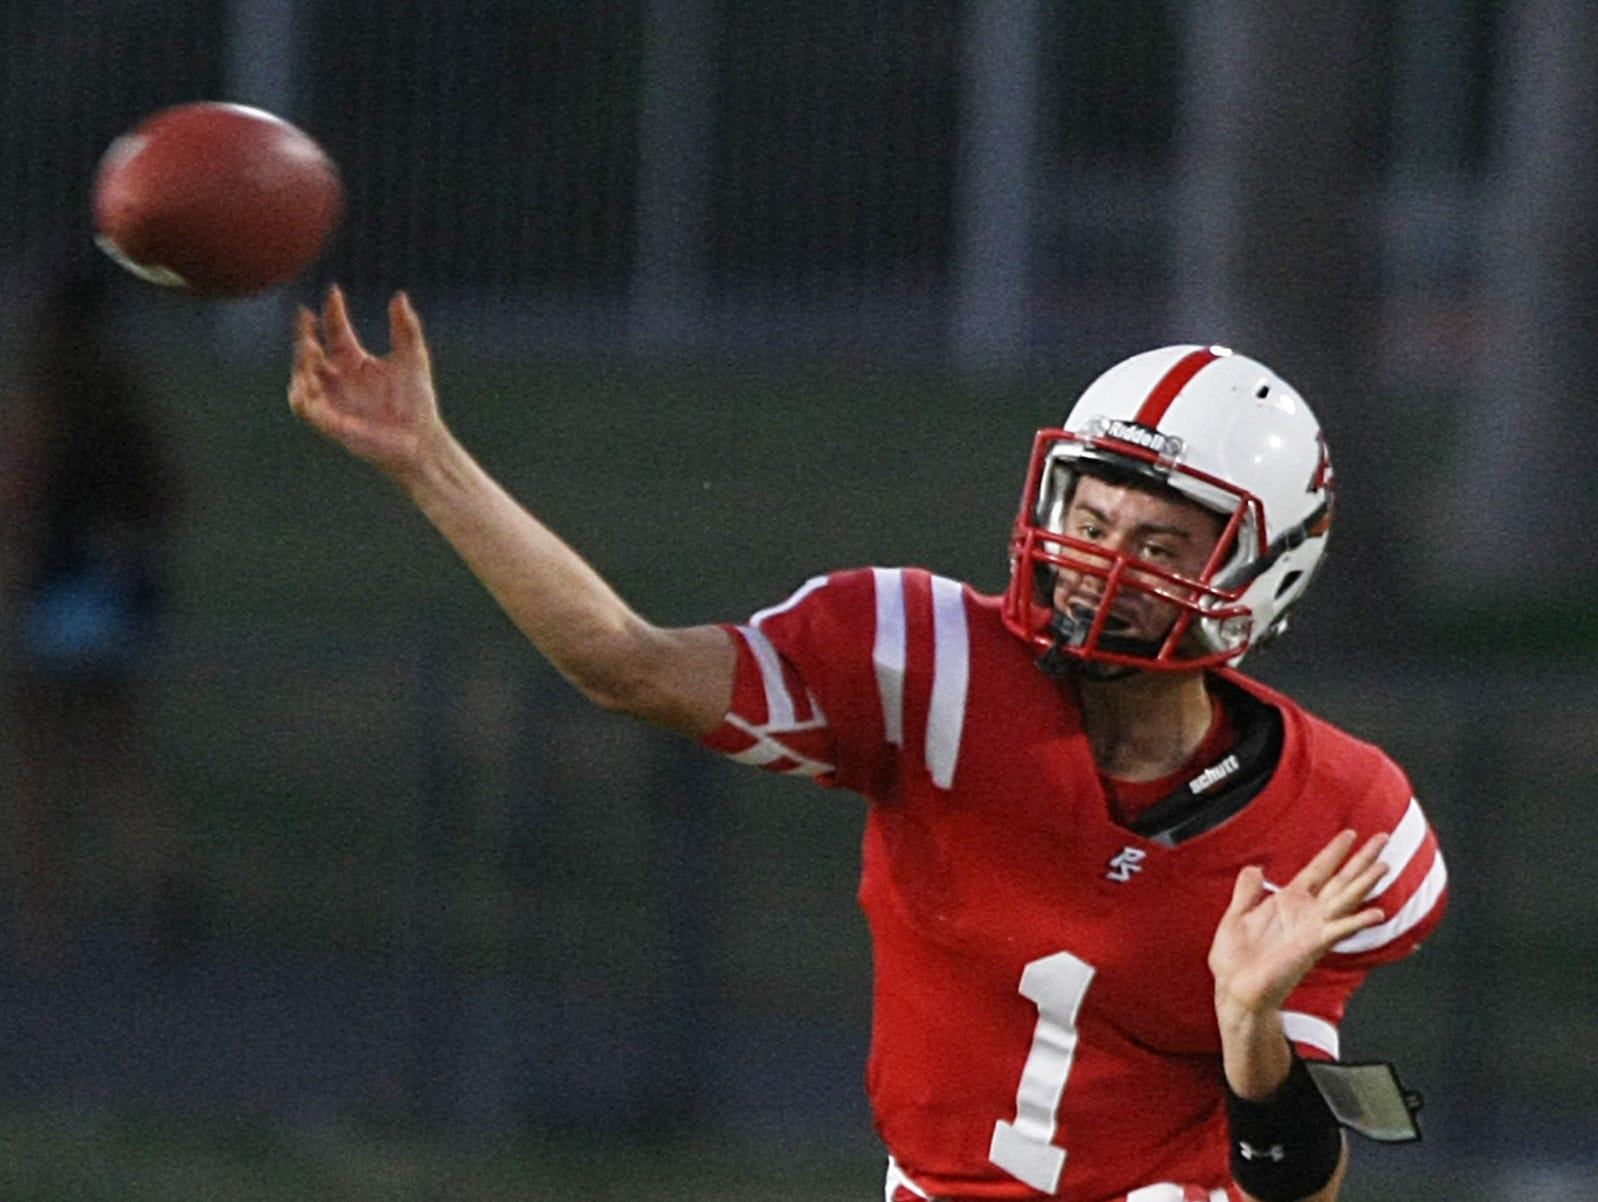 Palm Springs quarterback William Olvera is one player in the valley who has benefited from private coaching.